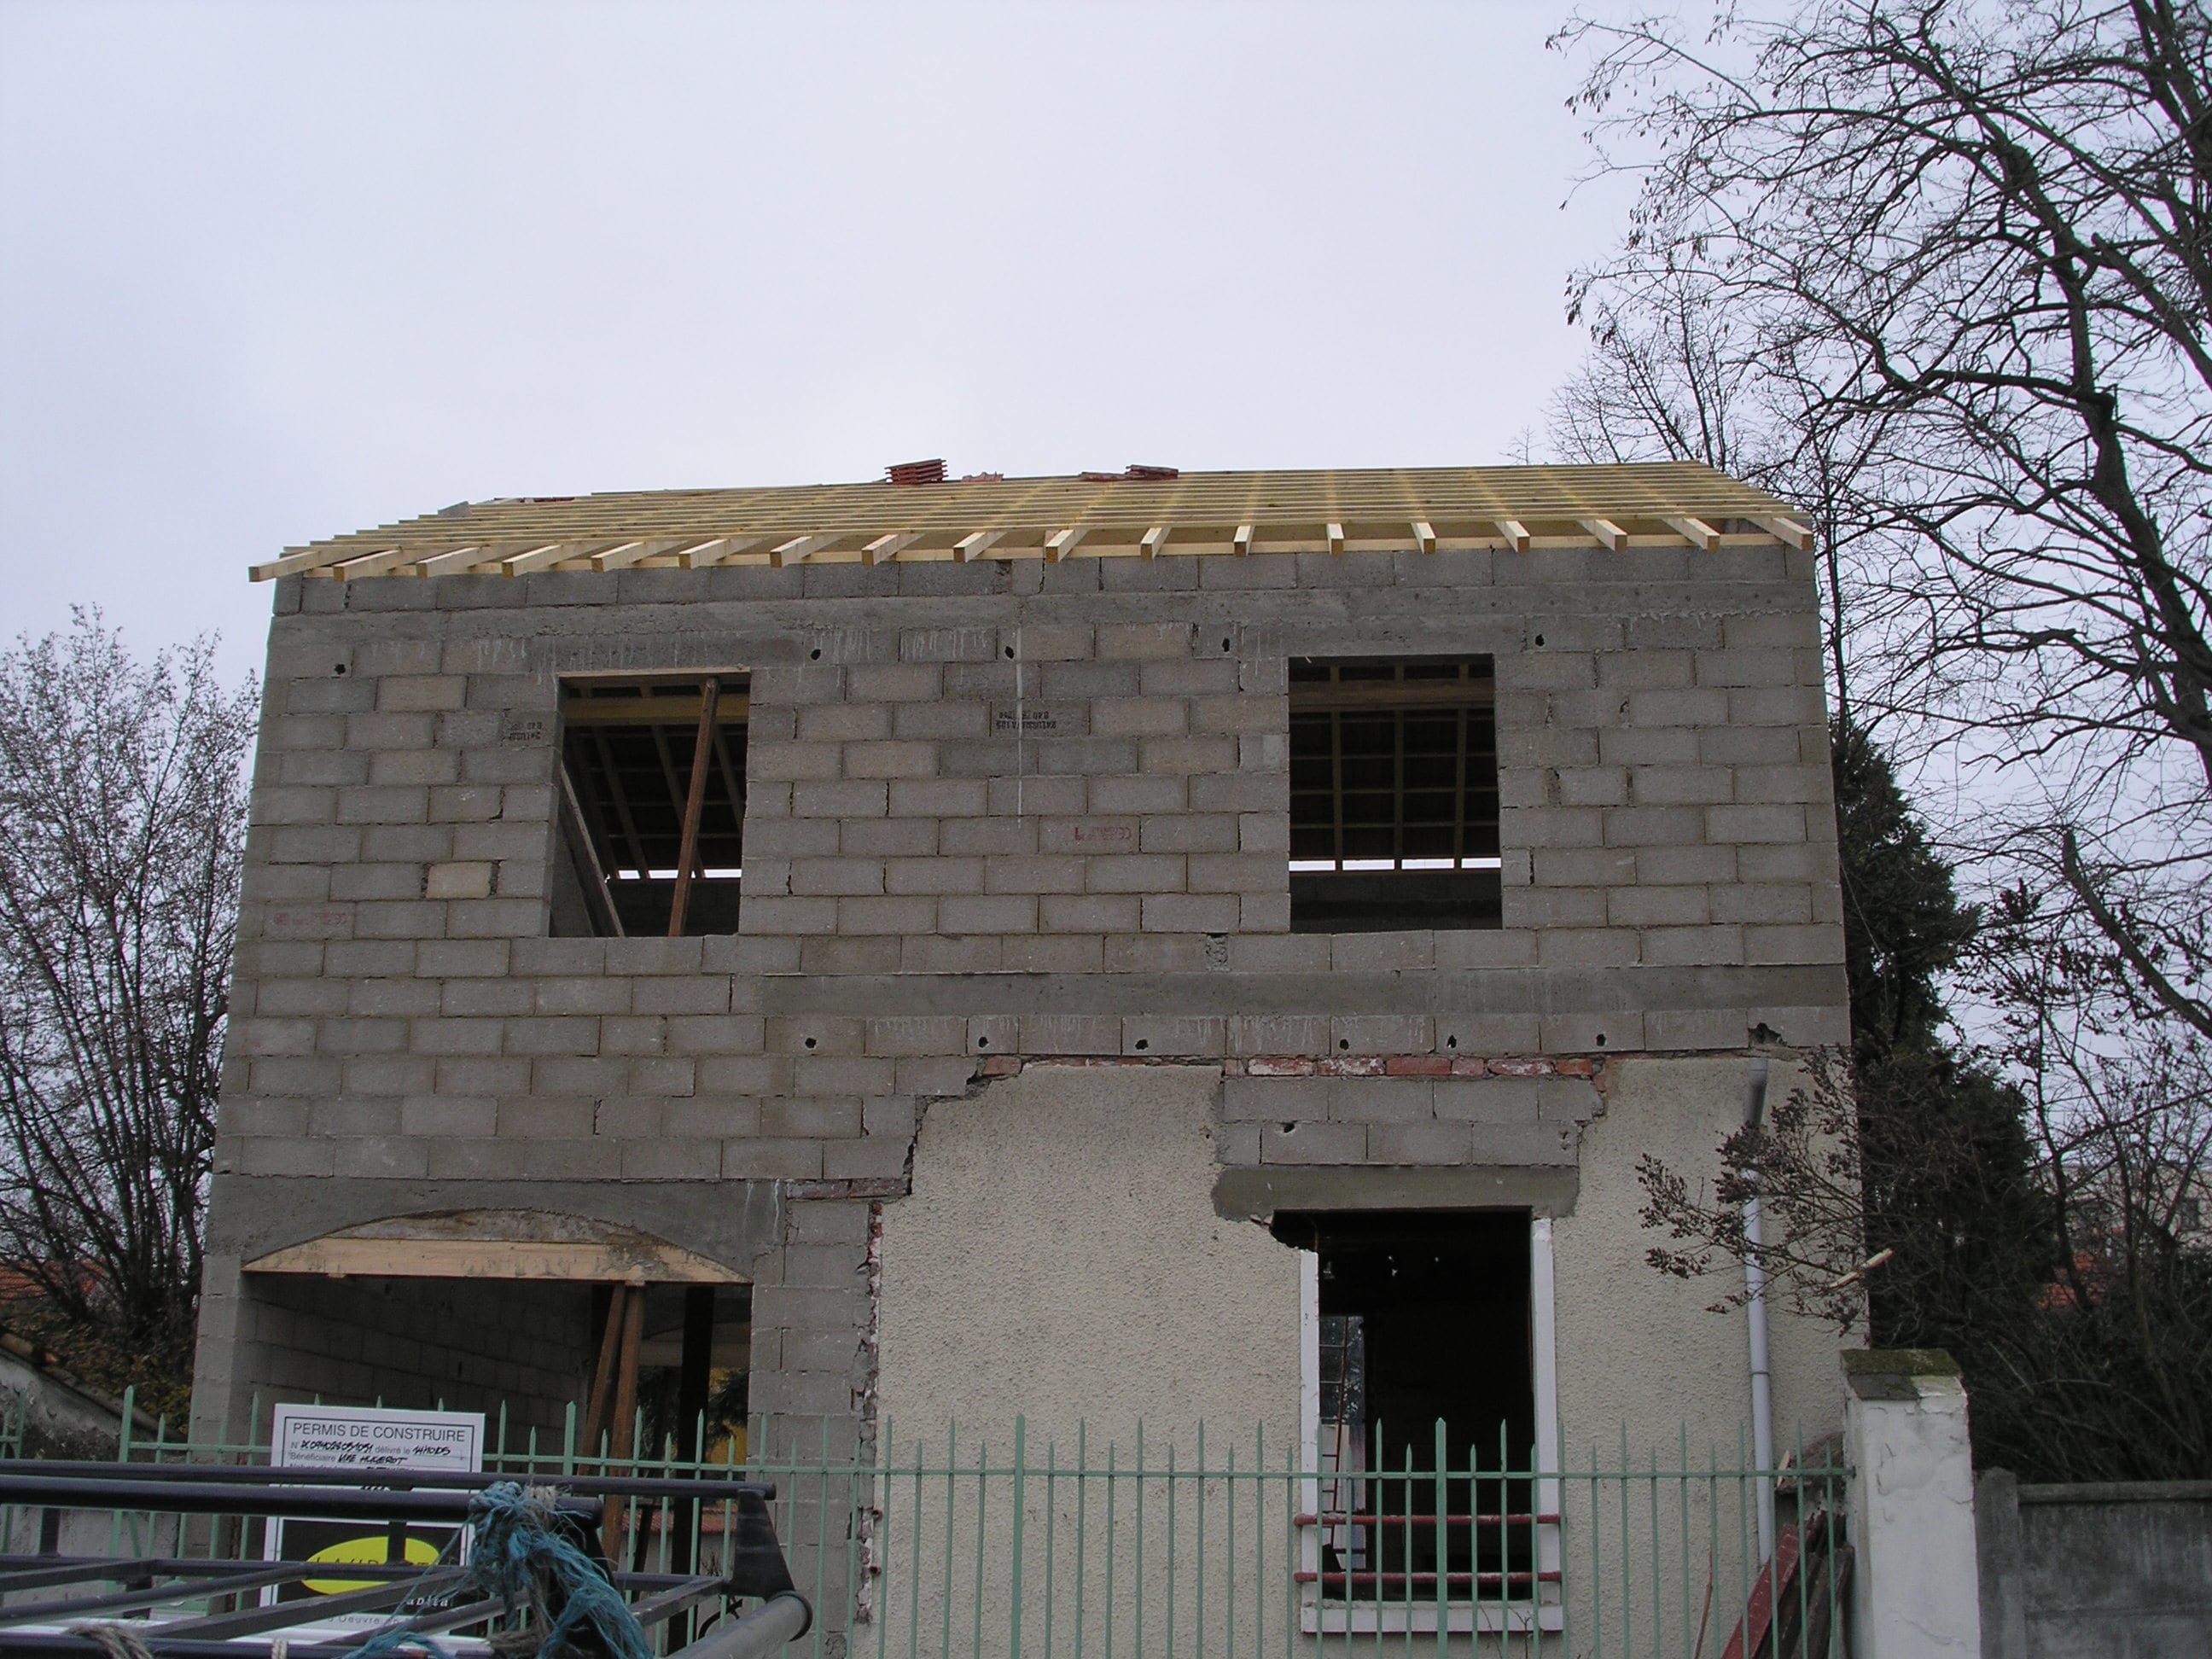 travaux-pavillon-8-demolition-agrandissement-couverture-ravalement-texas-batiment-min